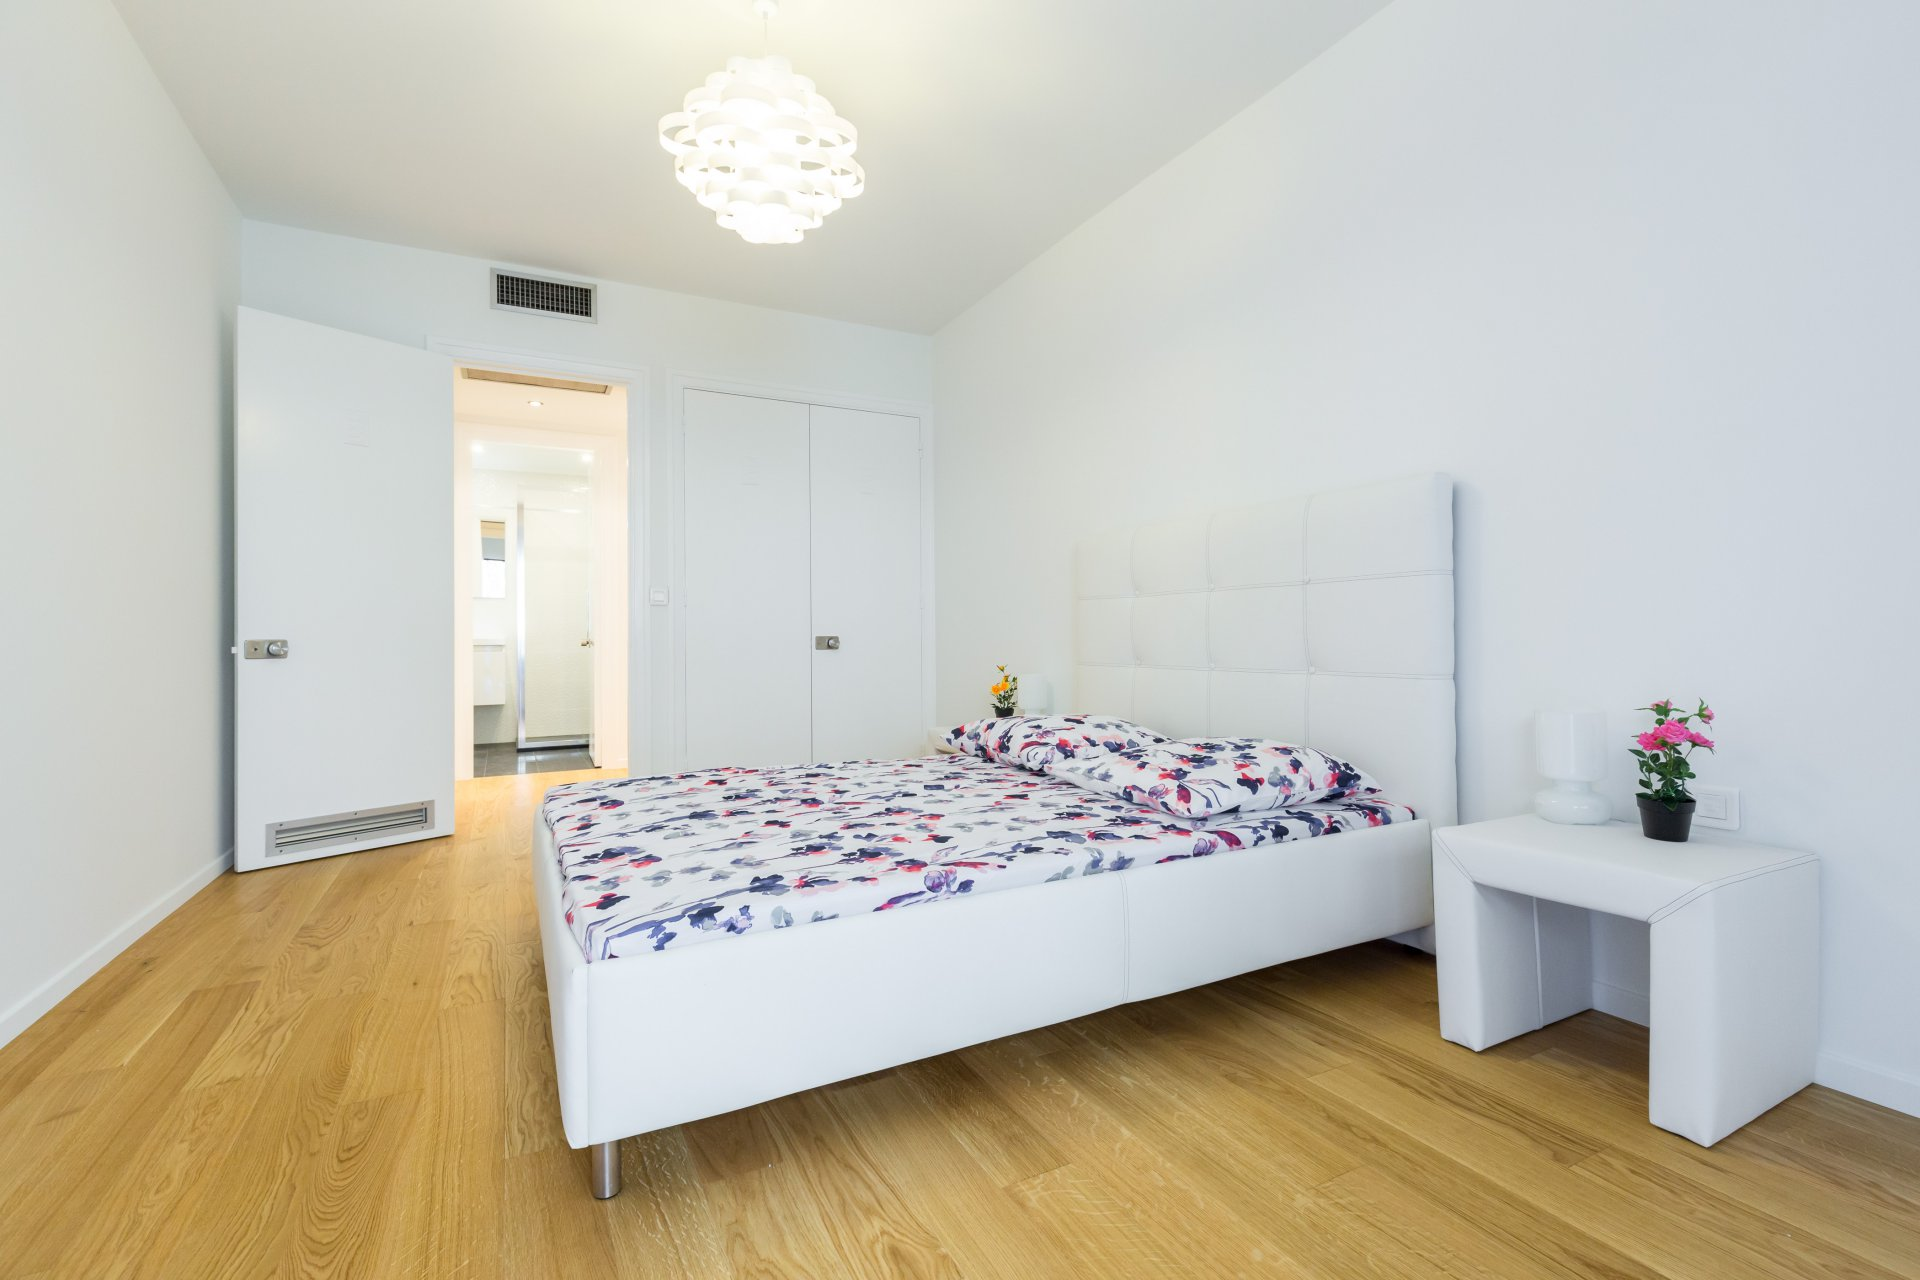 Nice Carré d'or - 1 bedroom - Terrasse - 510 000 Euros